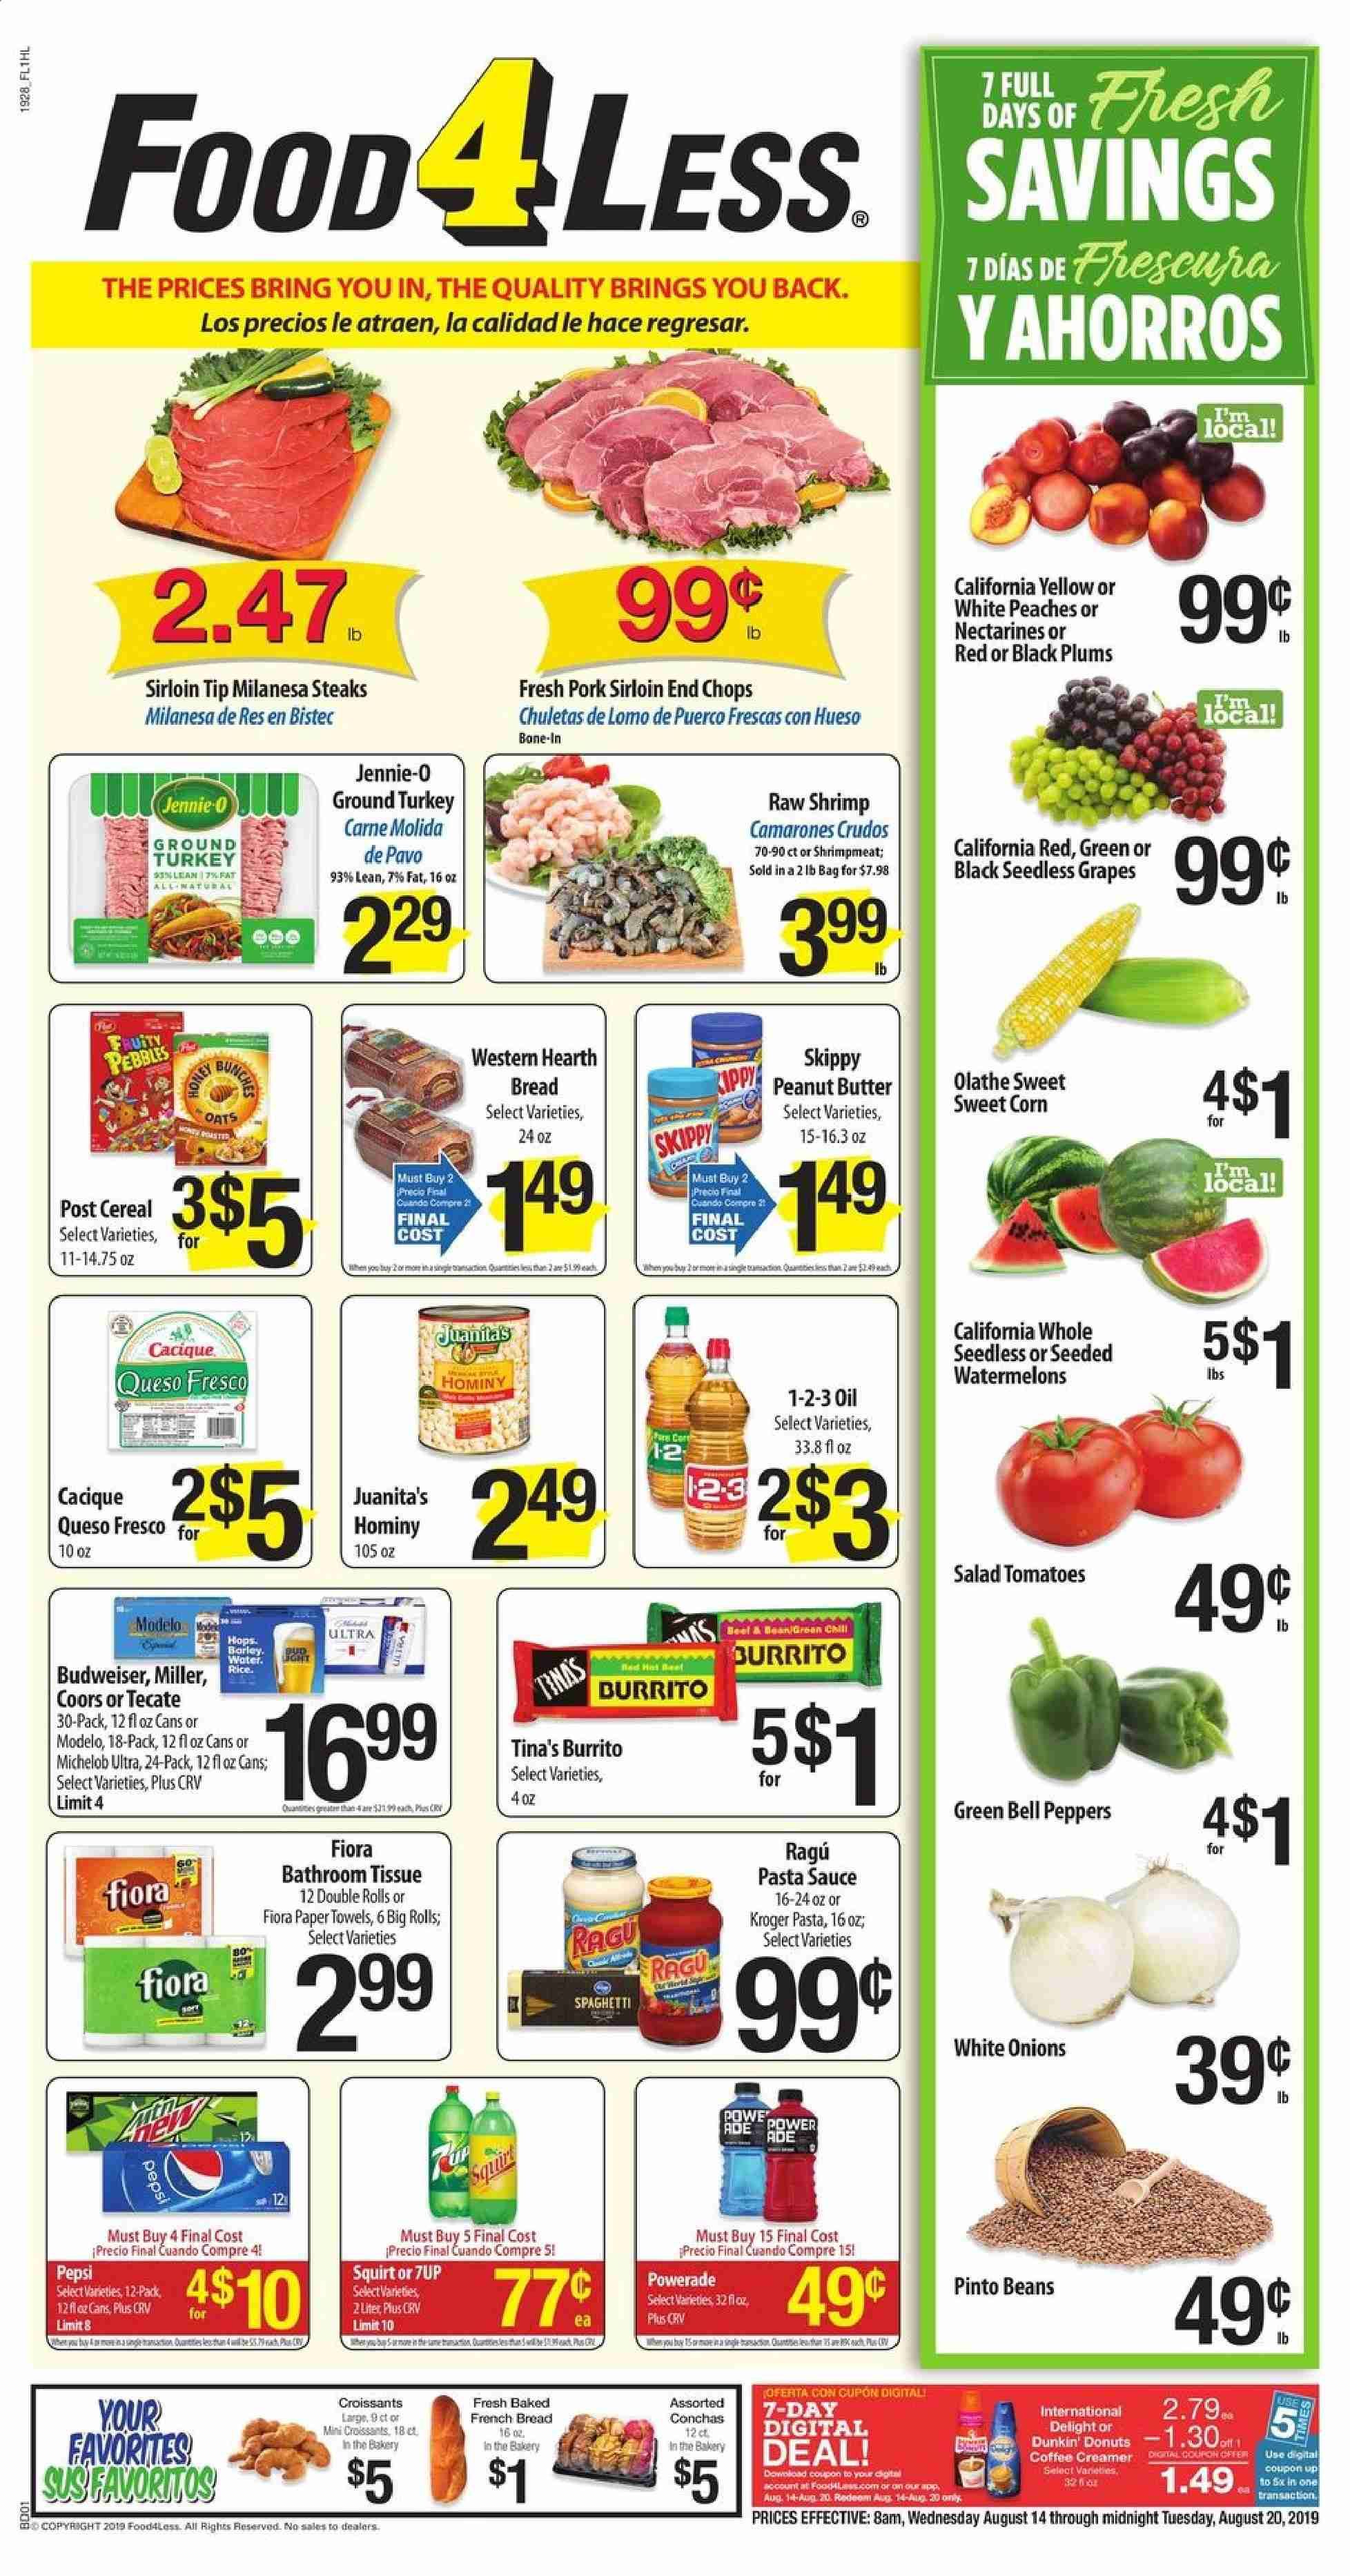 Food 4 Less Flyer - 08.14.2019 - 08.20.2019 - Sales products - Budweiser, Coors, Michelob, bell peppers, corn, tomatoes, onion, peppers, grapes, nectarines, seedless grapes, plums, bread, corn bread, rolls, donut, croissant, shrimps, salad, queso fresco, butter, creamer, sauce, beans, Beet, oats, barley, cereals, rice, spaghetti, pinto beans, pasta, pasta sauce, Powerade, Pepsi, water, ground turkey, turkey, pork meat. Page 1.